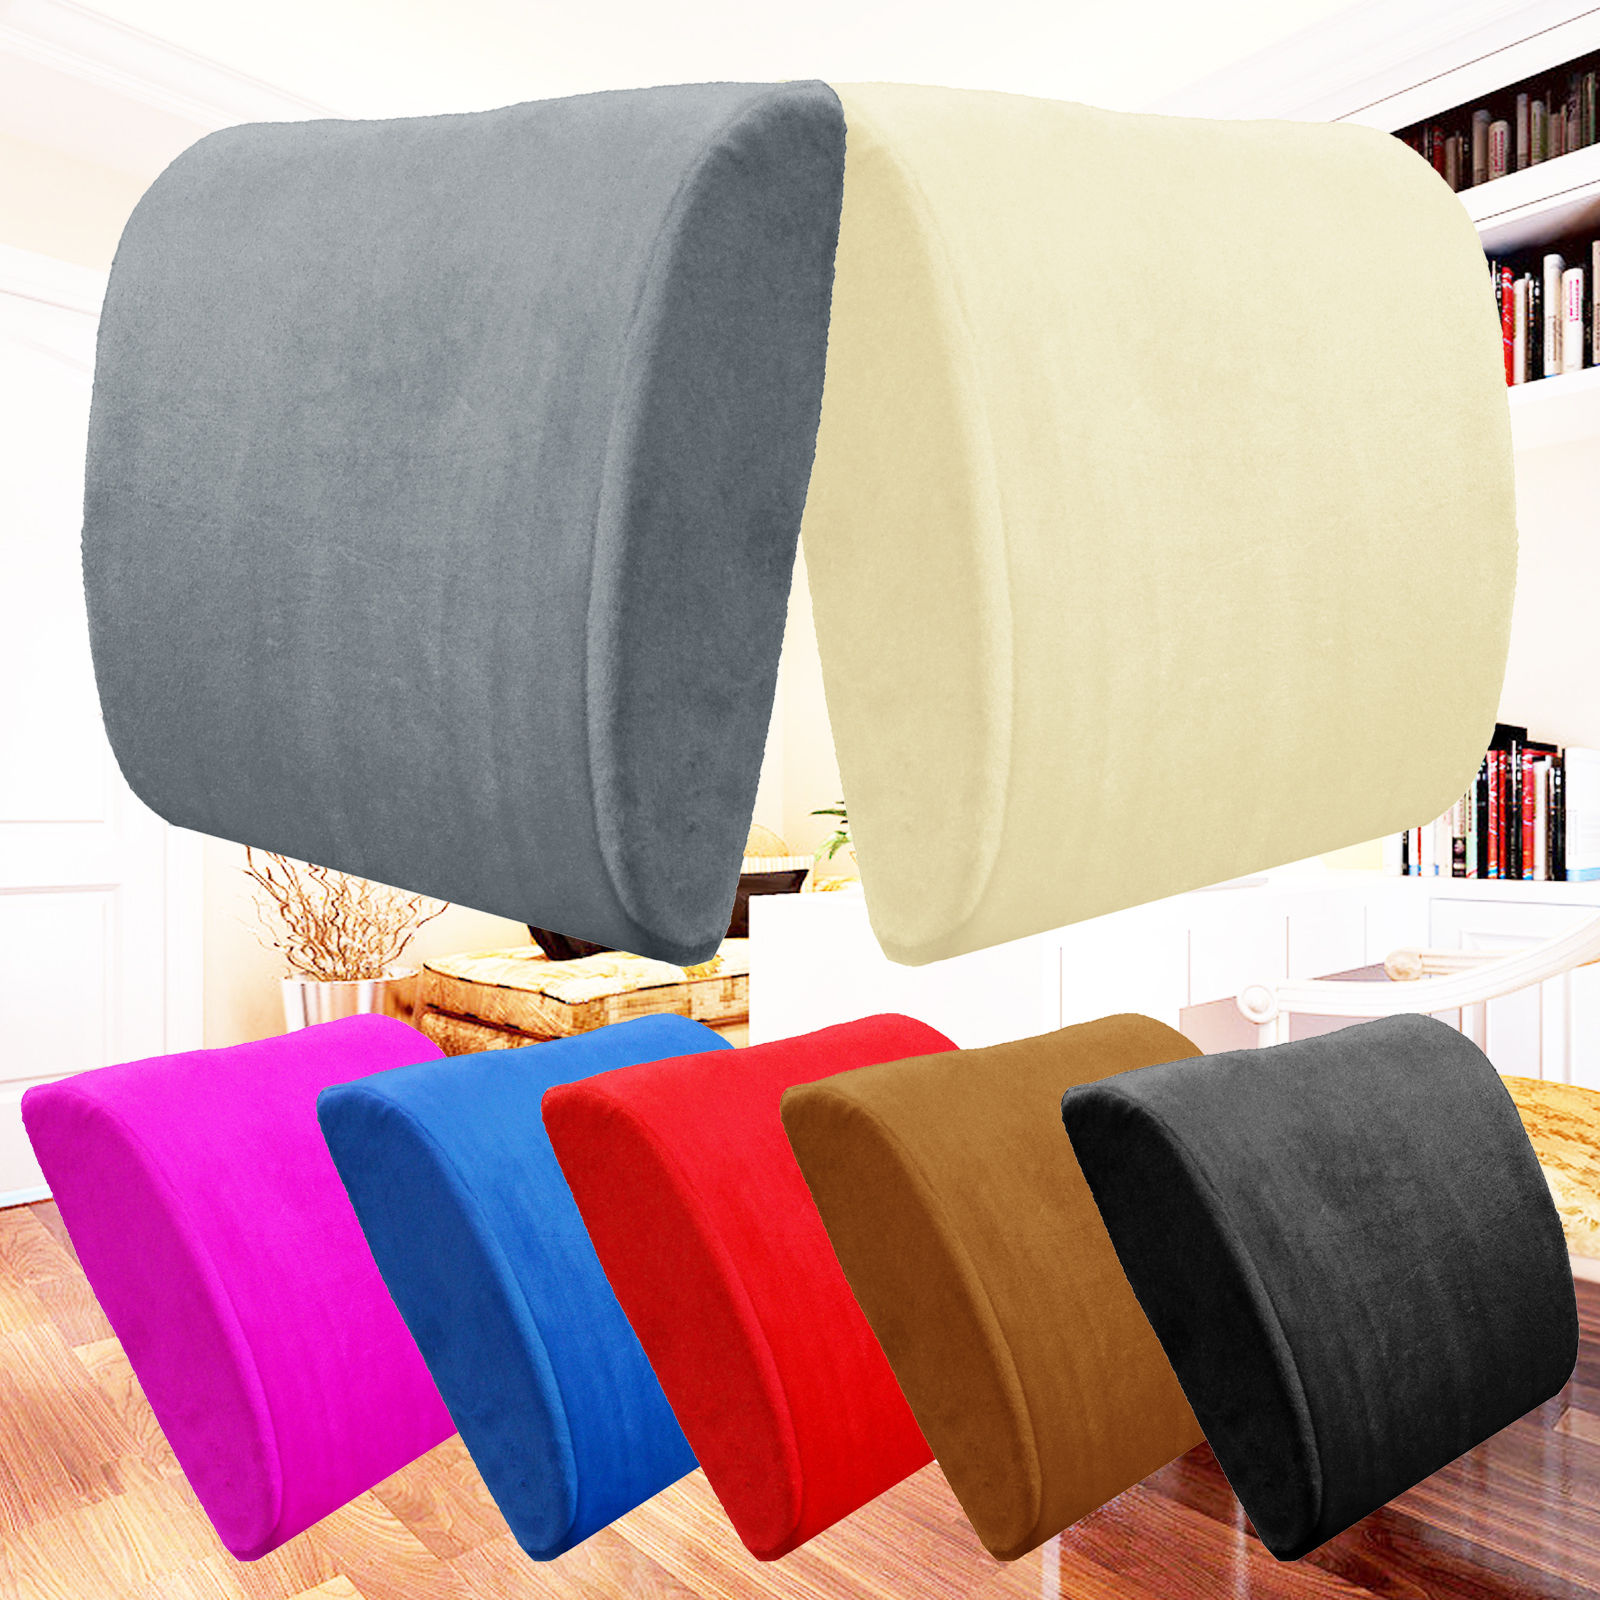 Memory Foam Lumbar Back Support Pillow Sciatica & Pain Relief Seat Chair Cushion Black and More Colors